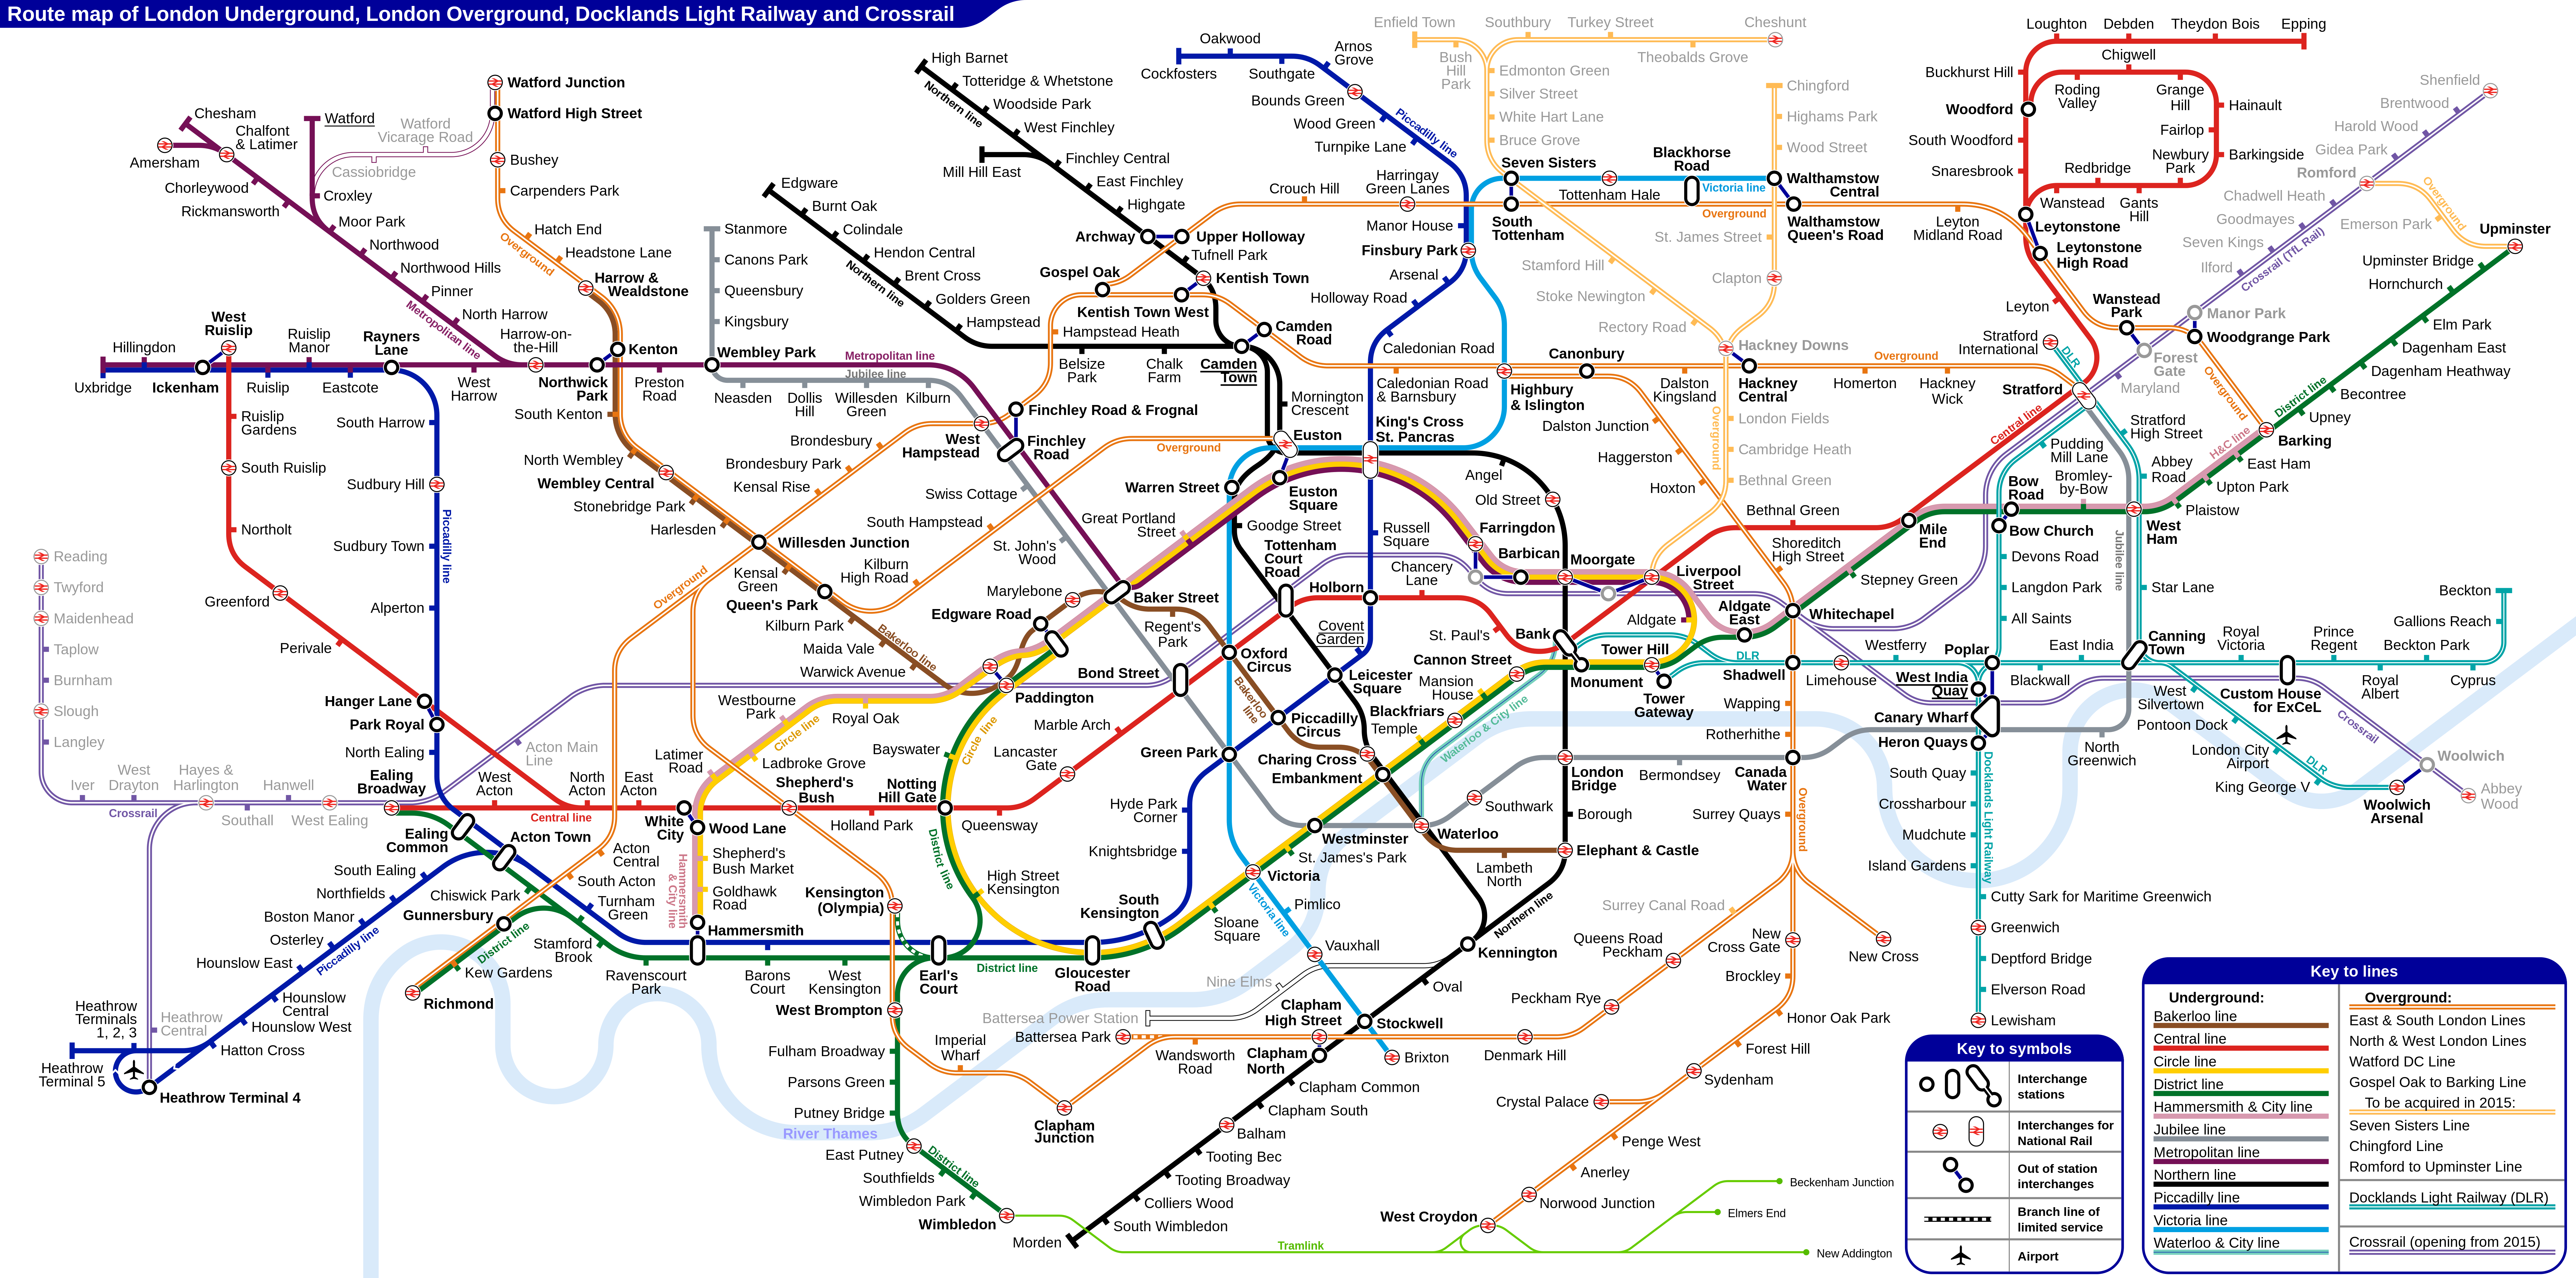 London_Underground_Overground_DLR_Crossrail_map.svg